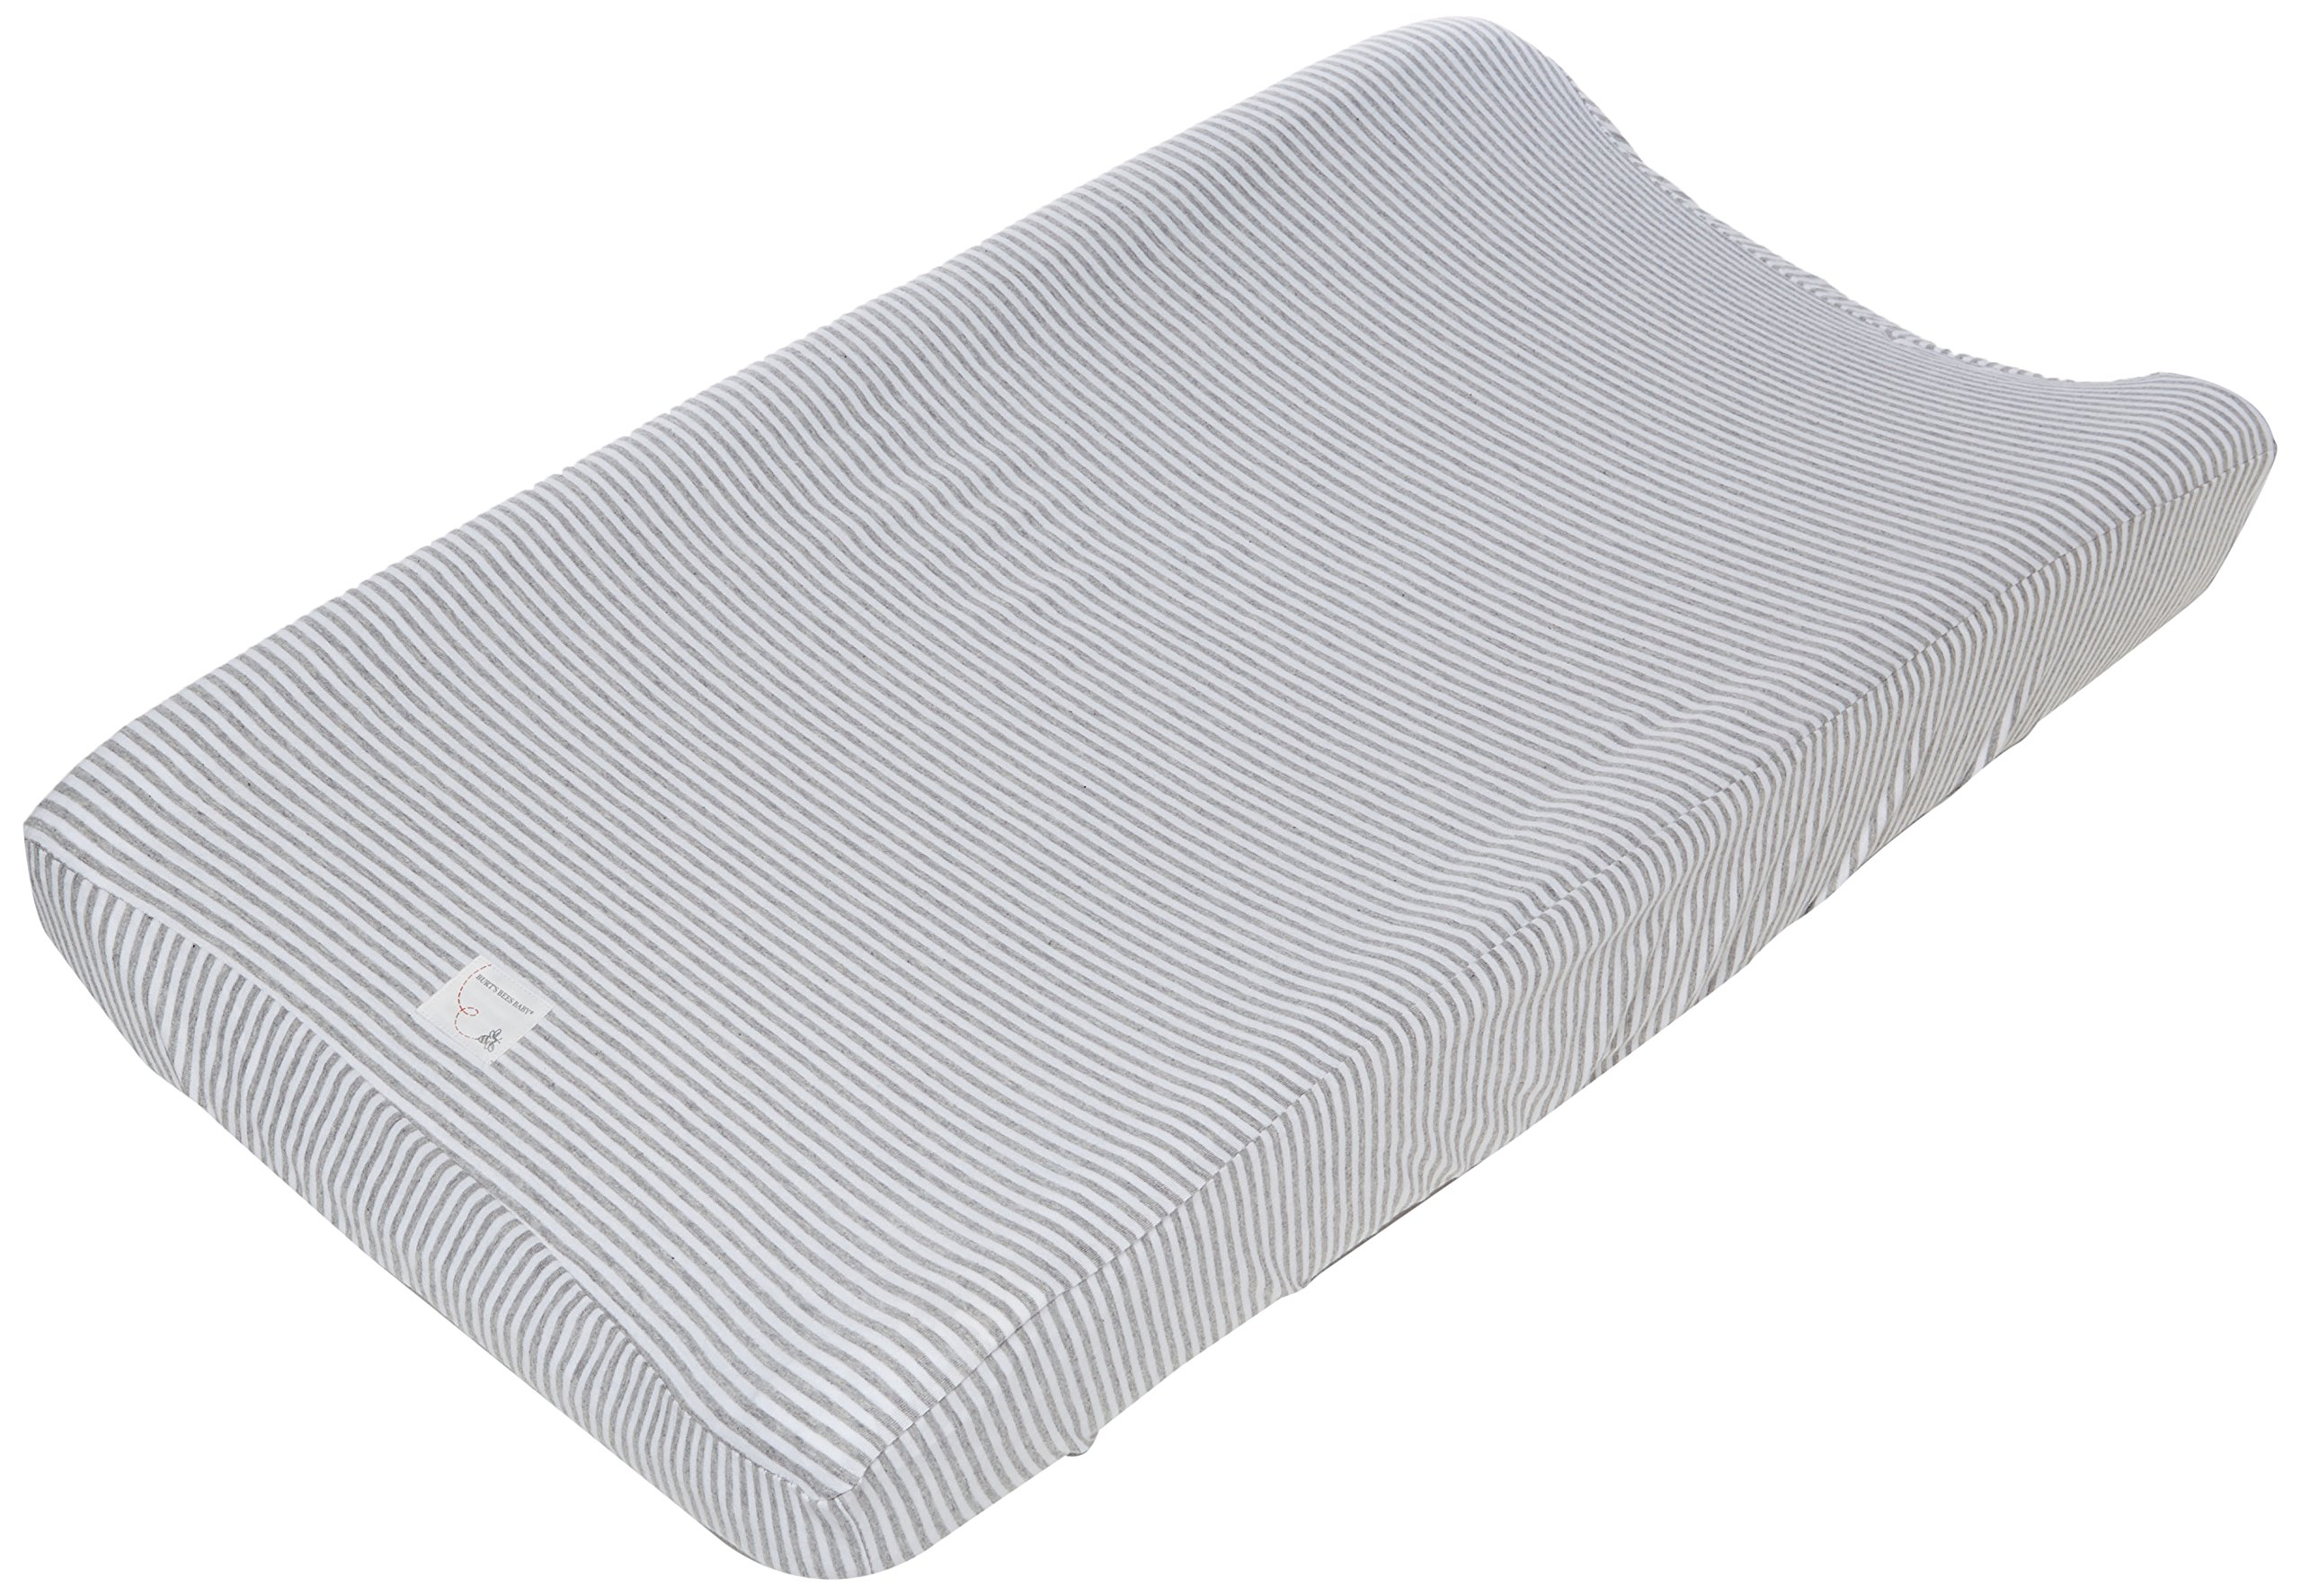 Burt's Bees Baby - Changing Pad Cover, 100% Organic Cotton Changing Pad Liner for Standard 16'' x 32'' Baby Changing Mats (Heather Grey Thin Stripes) by Burt's Bees Baby